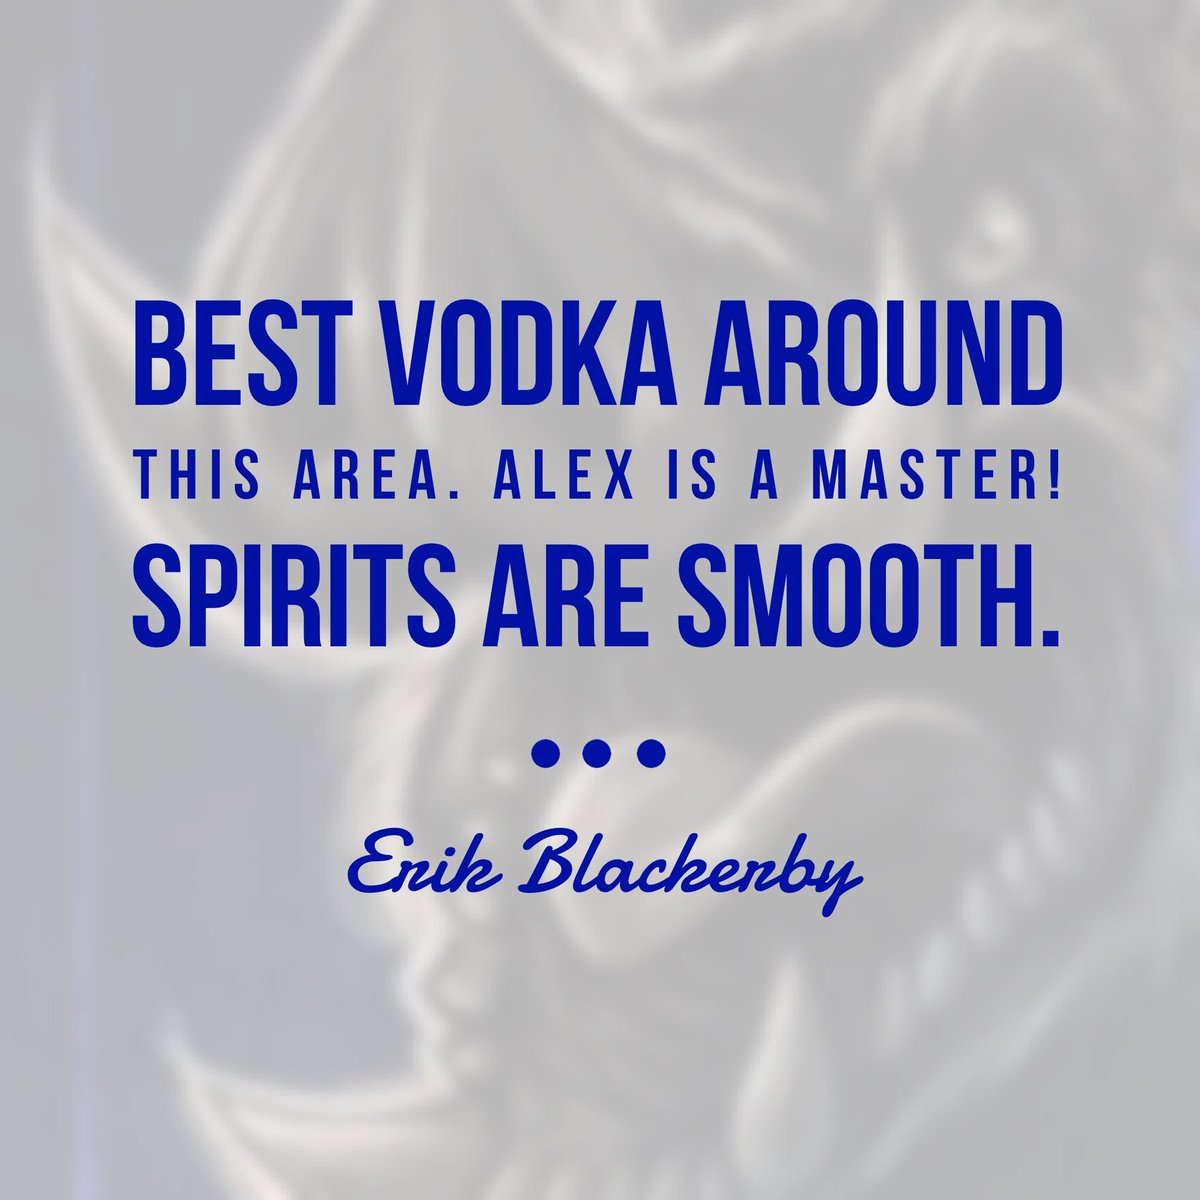 We love hearing from our customers!   #savageboarreviews #savageboar #savageboarvodka #cheney #spokane #airwayheights #supportlocal #vodka<br>http://pic.twitter.com/Ve9KNHmneC